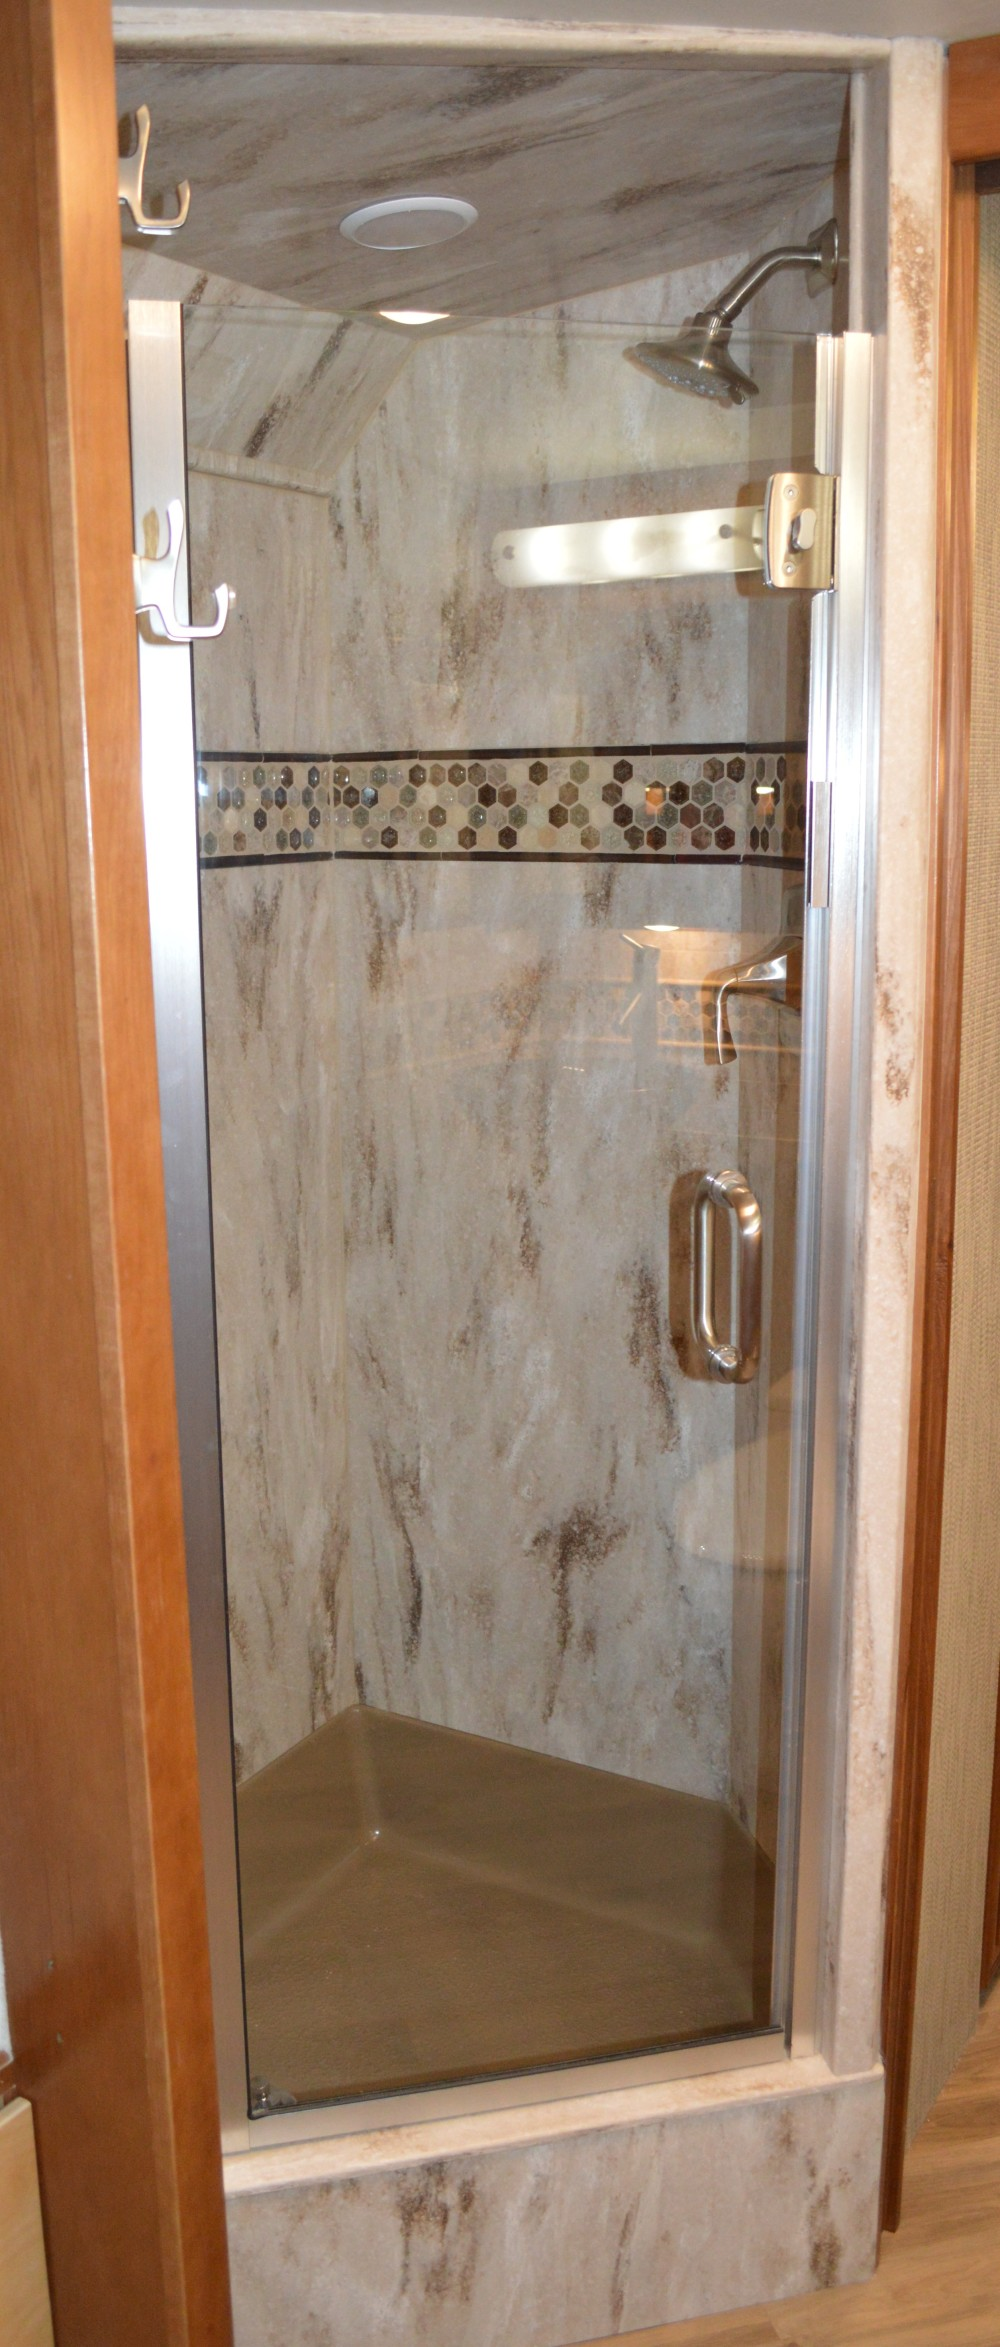 Showers  RV Renovations by Classic Coach Works